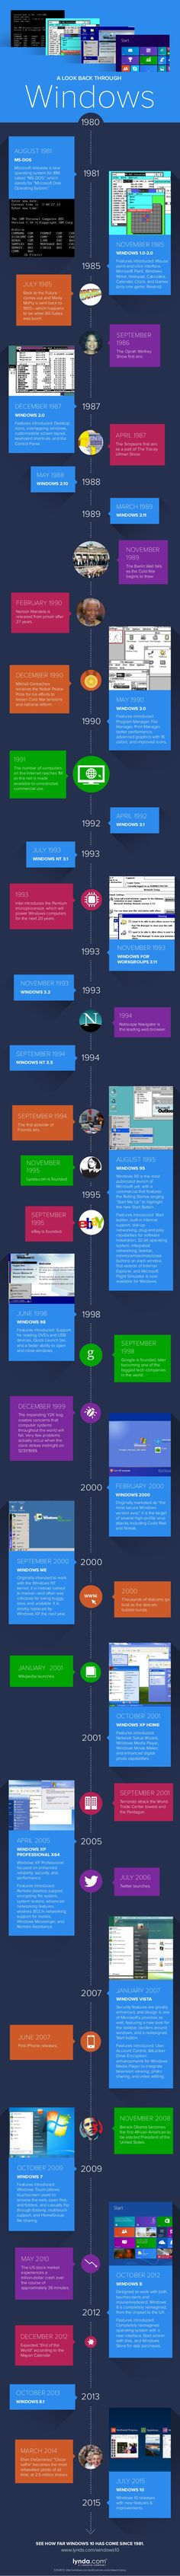 A look back through windows #INFOGRAPHIC #MICROSOFT